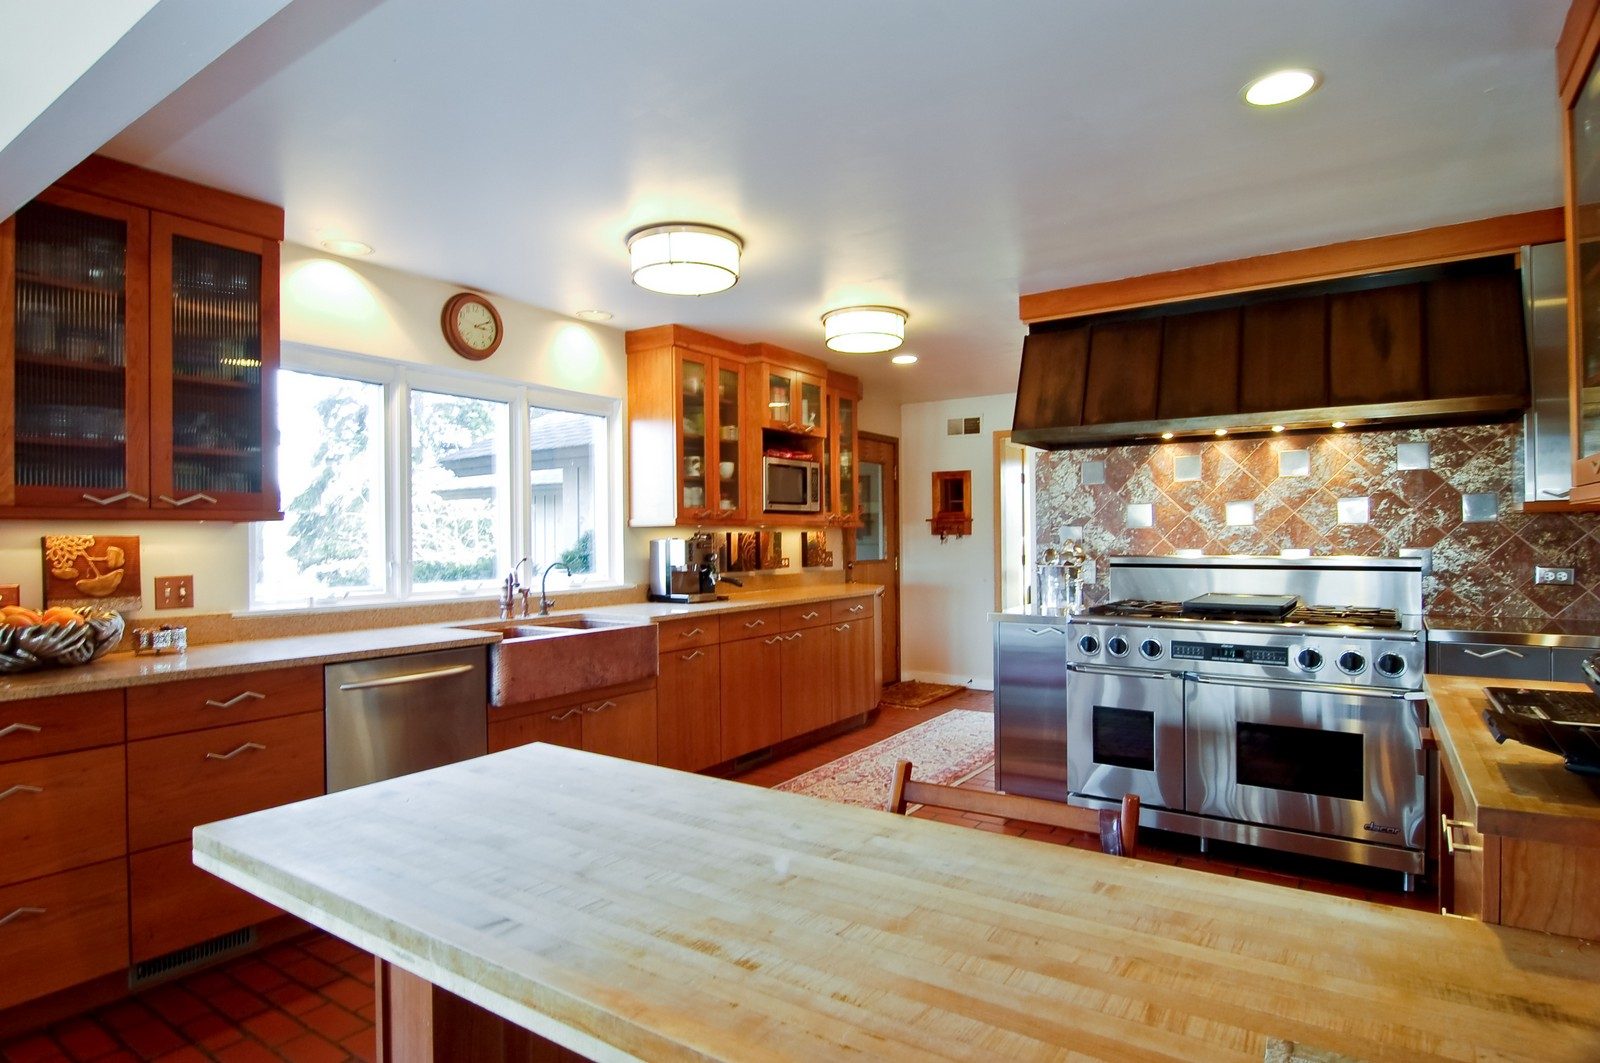 Real Estate Photography - 1S621 Bender, West Chicago, IL, 60185 - Kitchen